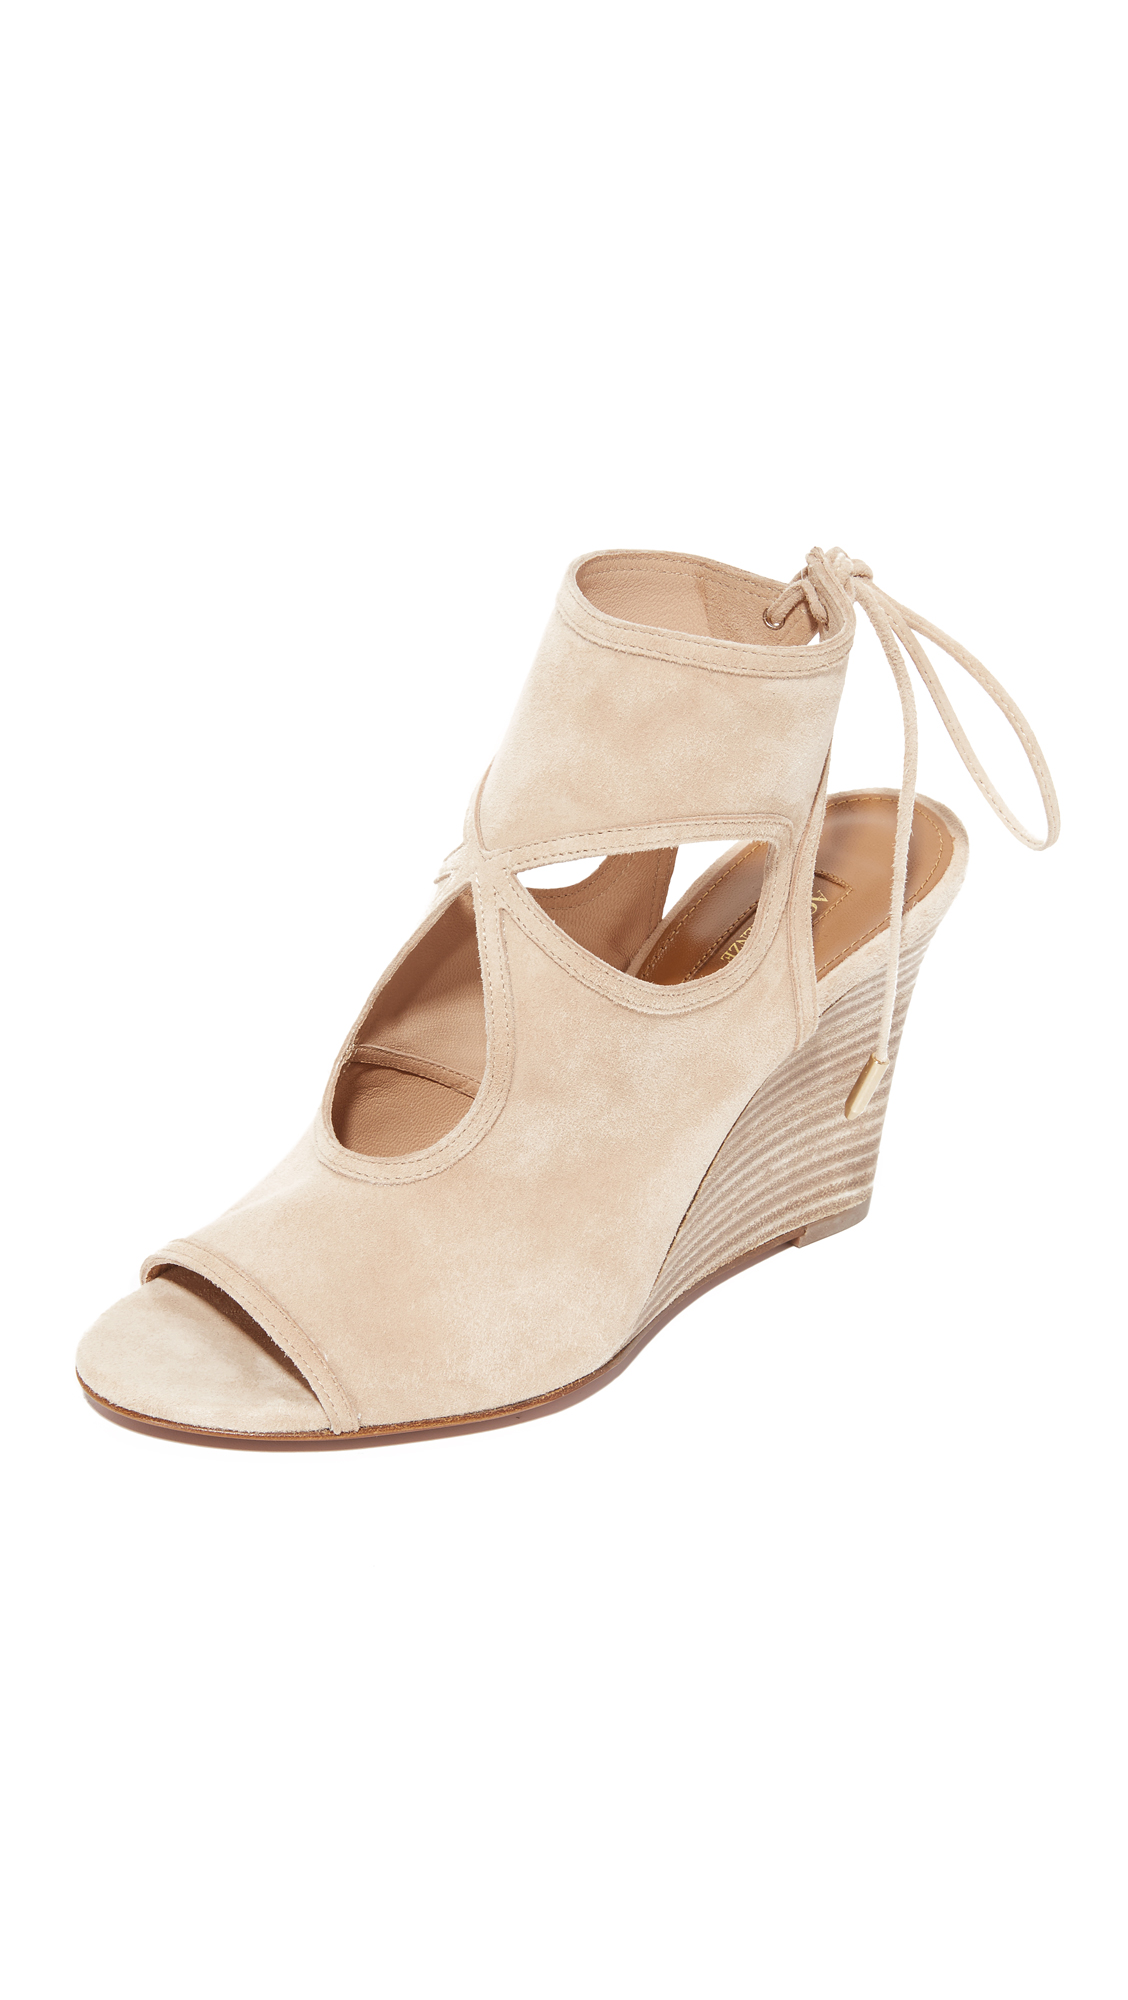 Aquazzura Sexy Thing Wedge Booties - Nude